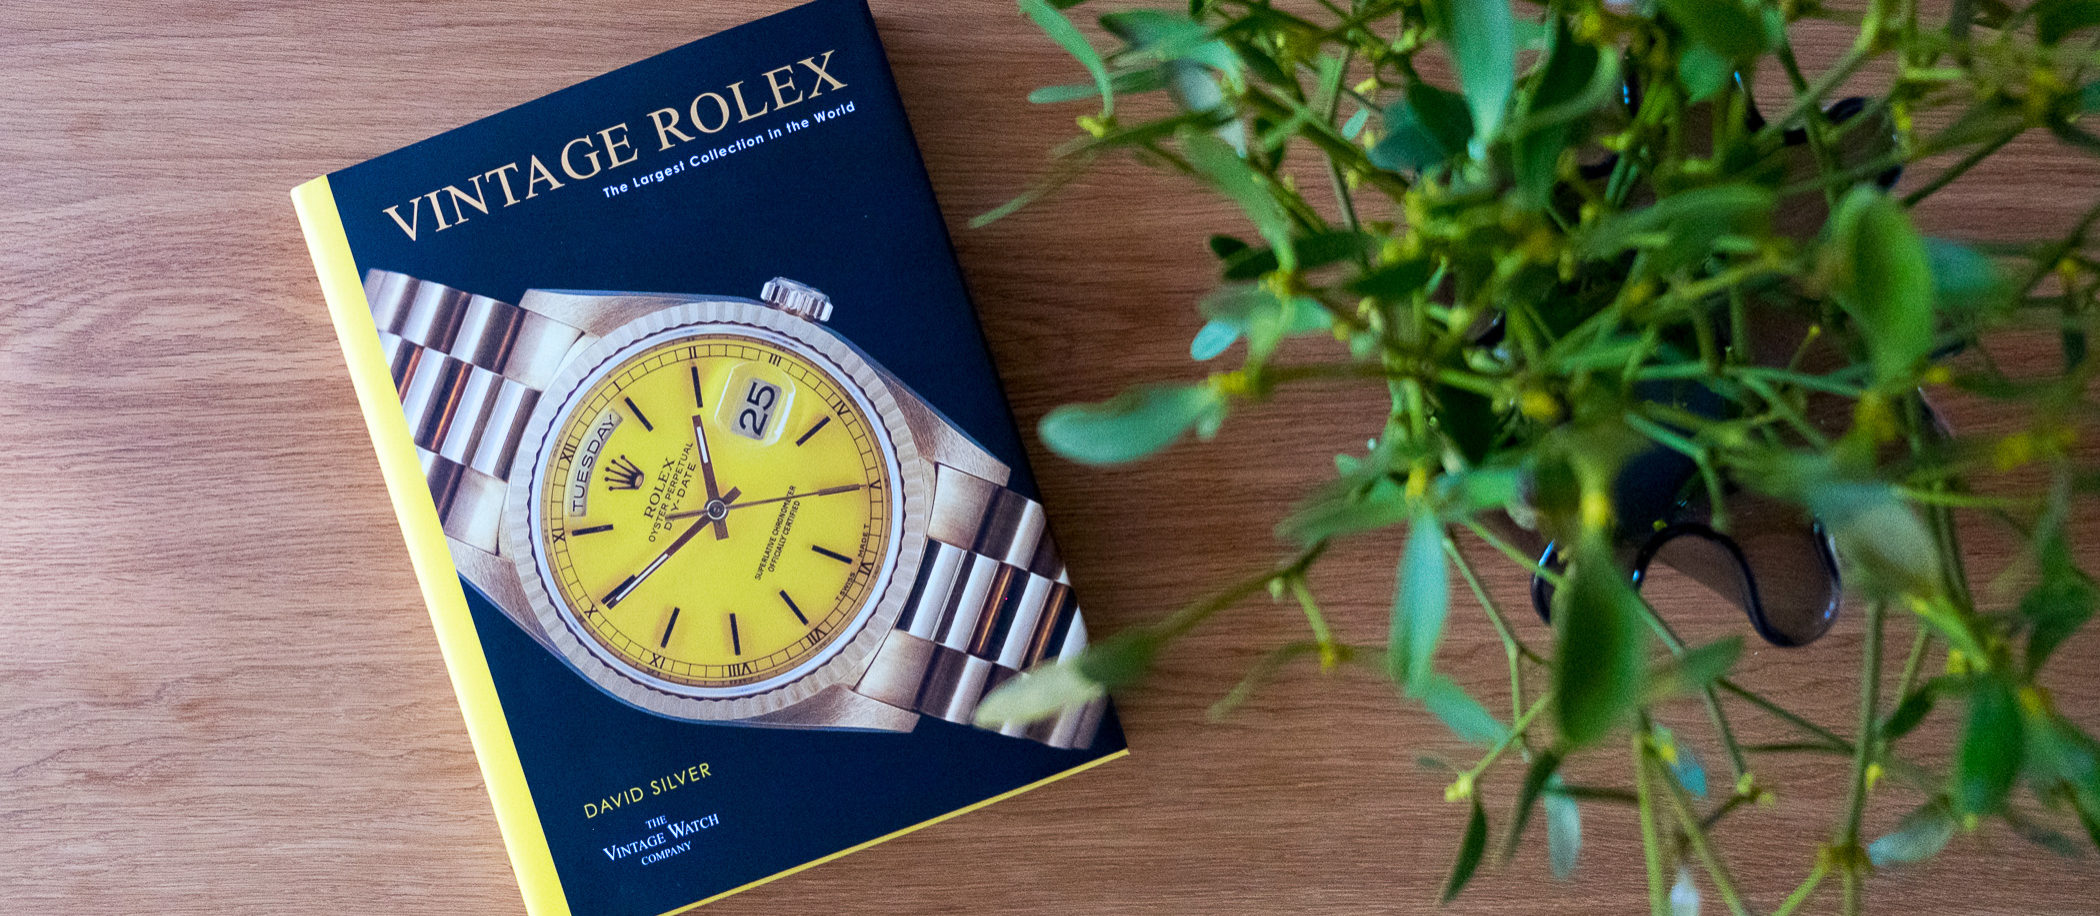 Vintage Rolex - The Largest Collection in the World - David Silver